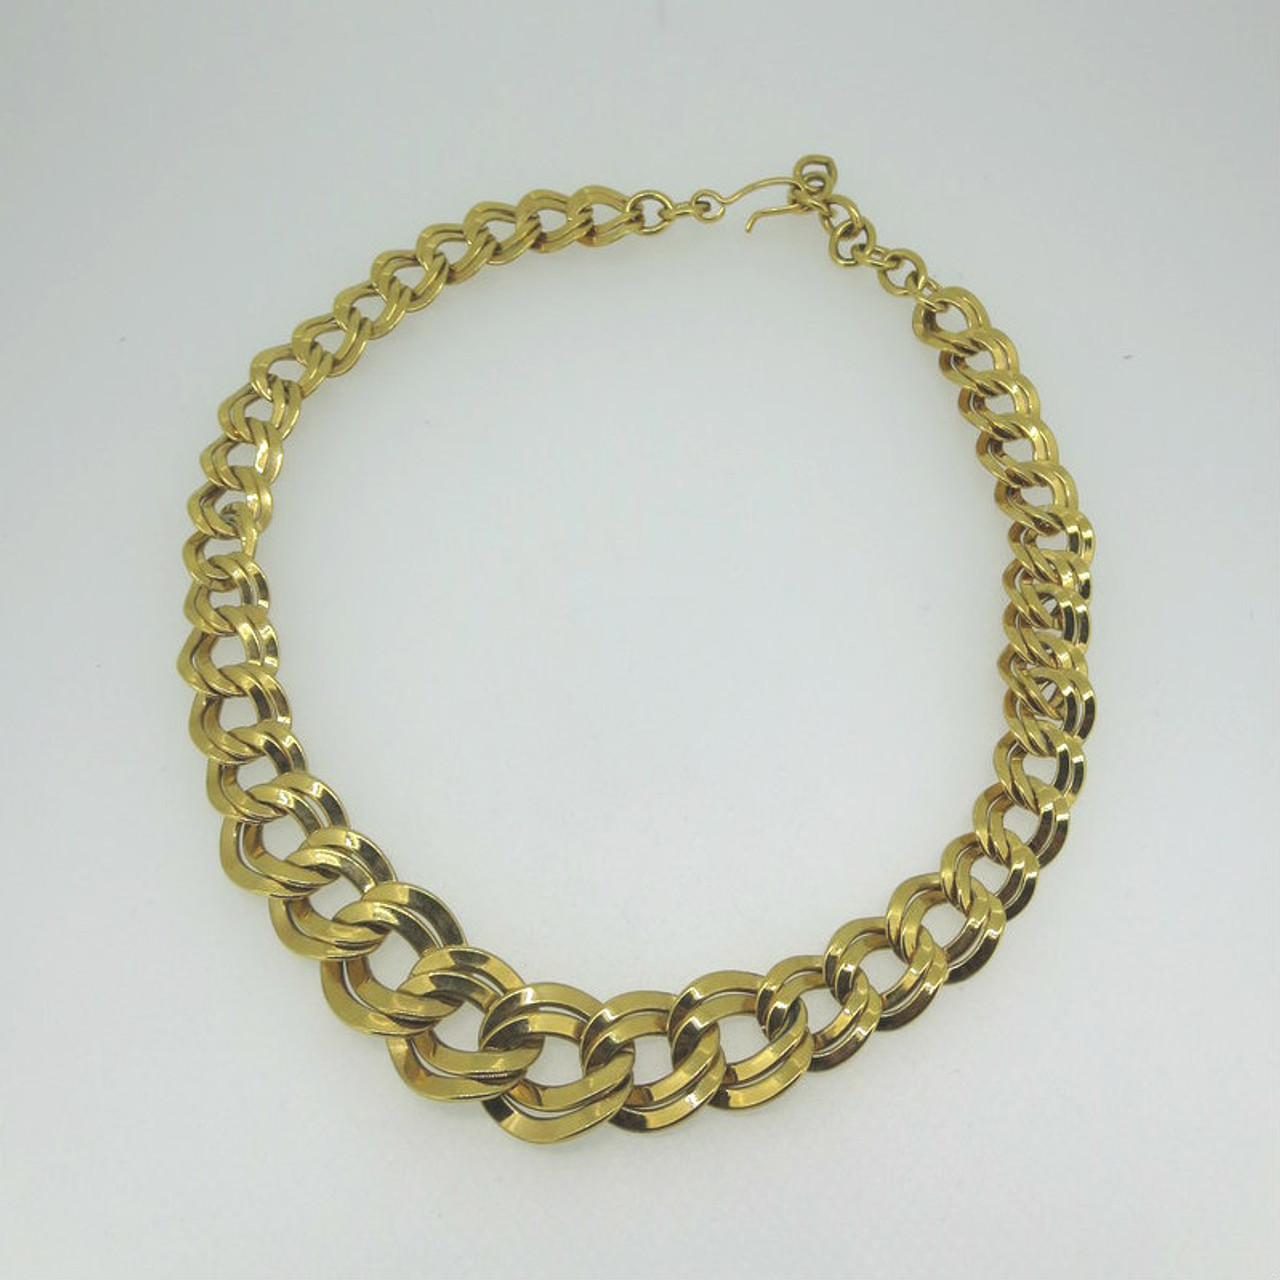 Vintage Yellow Gold Tone Monet Signed Layered Flat Chain Link